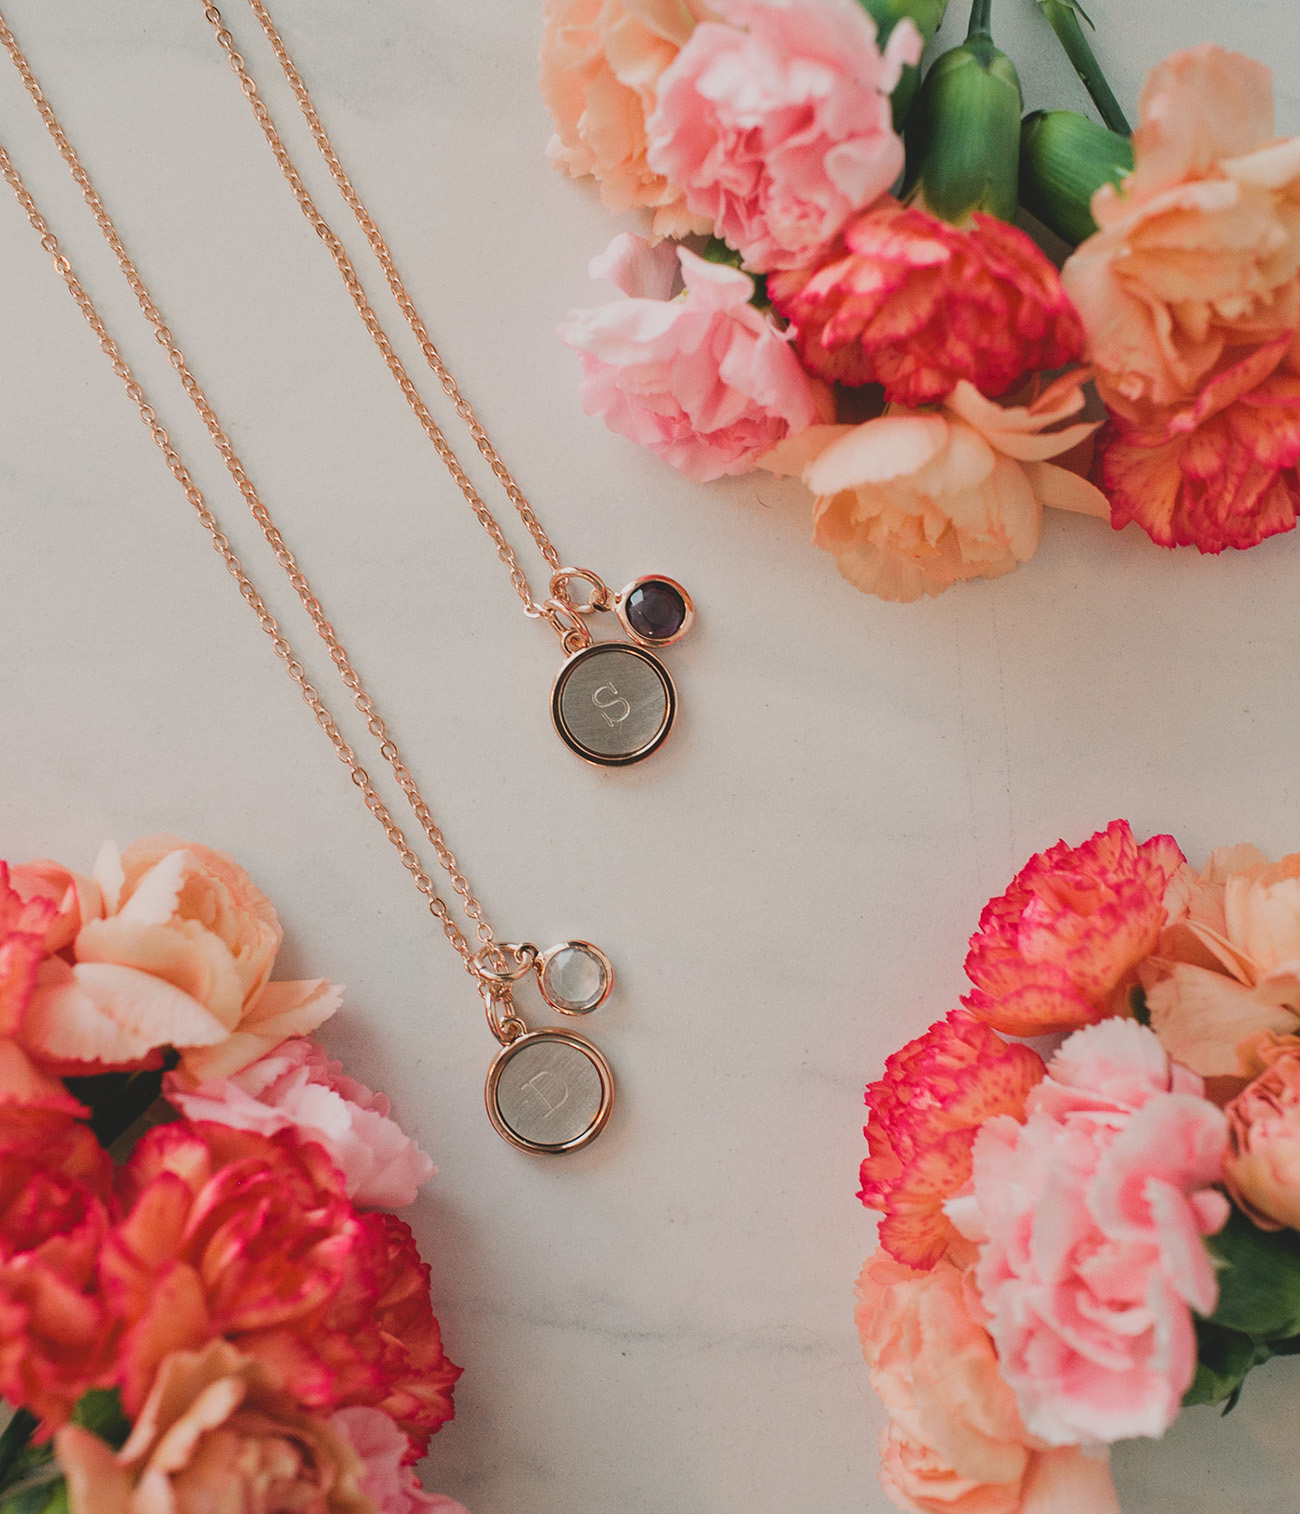 Personalized Necklaces from Shutterfly